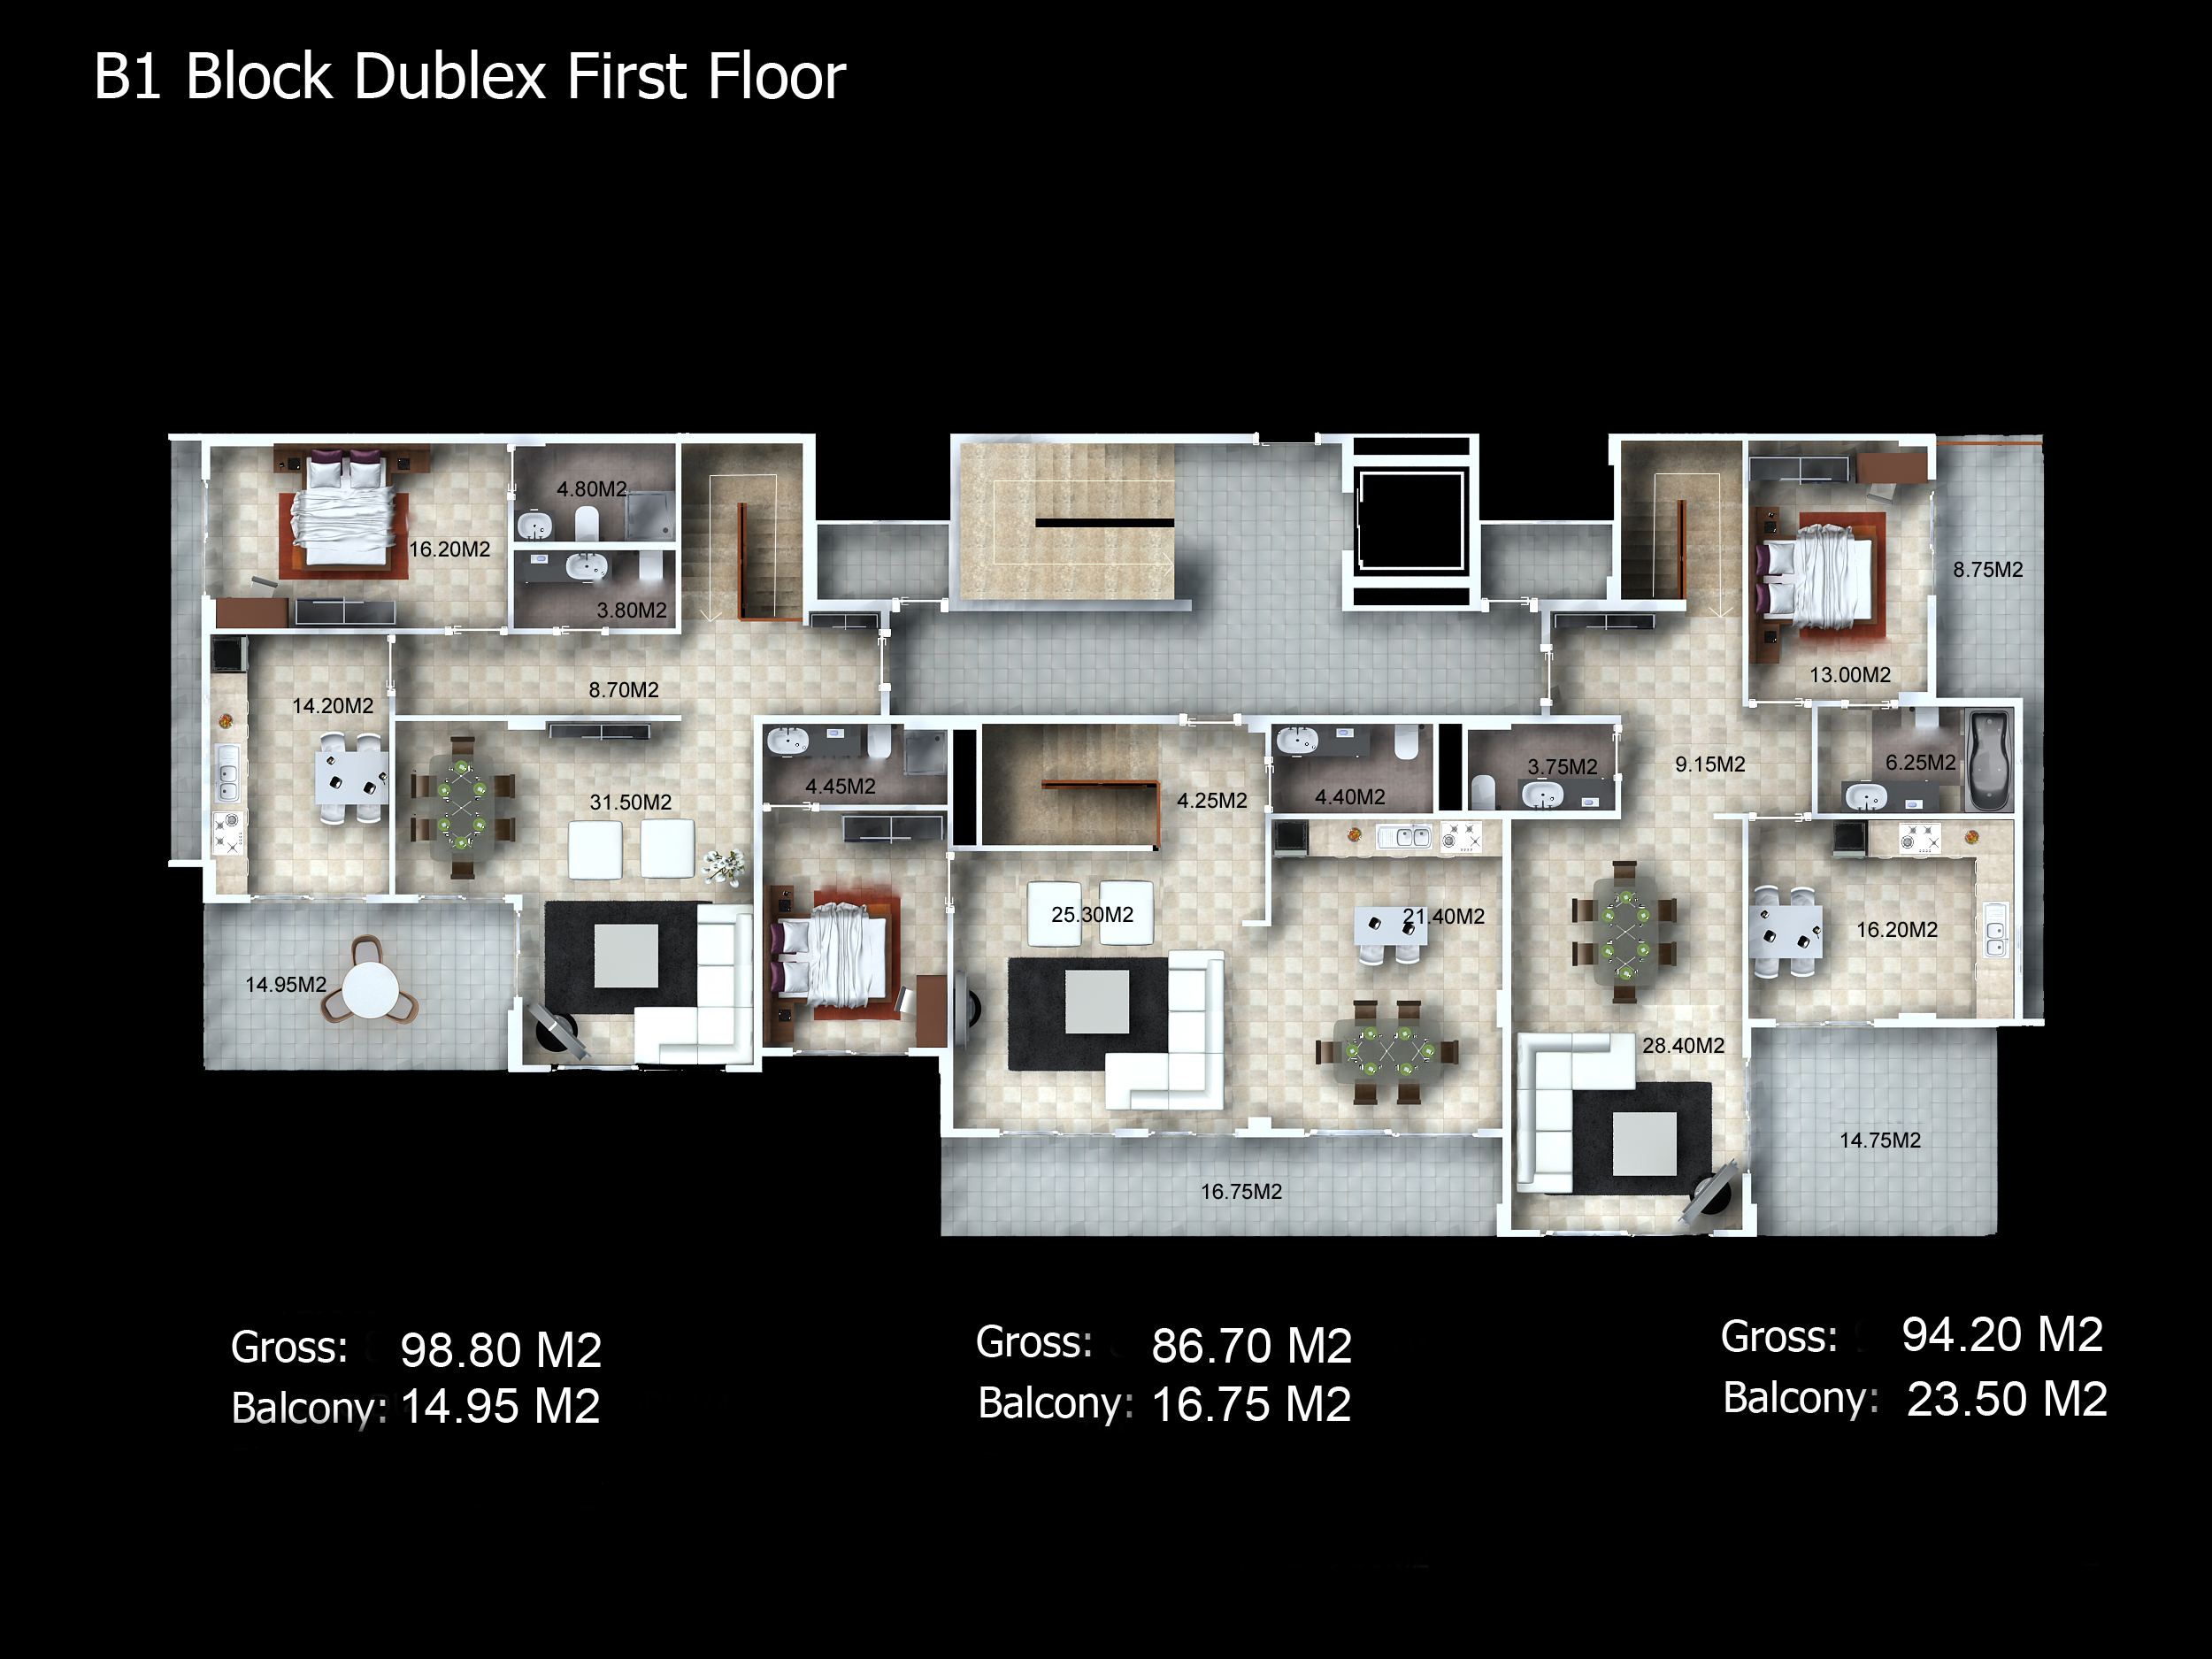 b1-block-dublex-first-floor